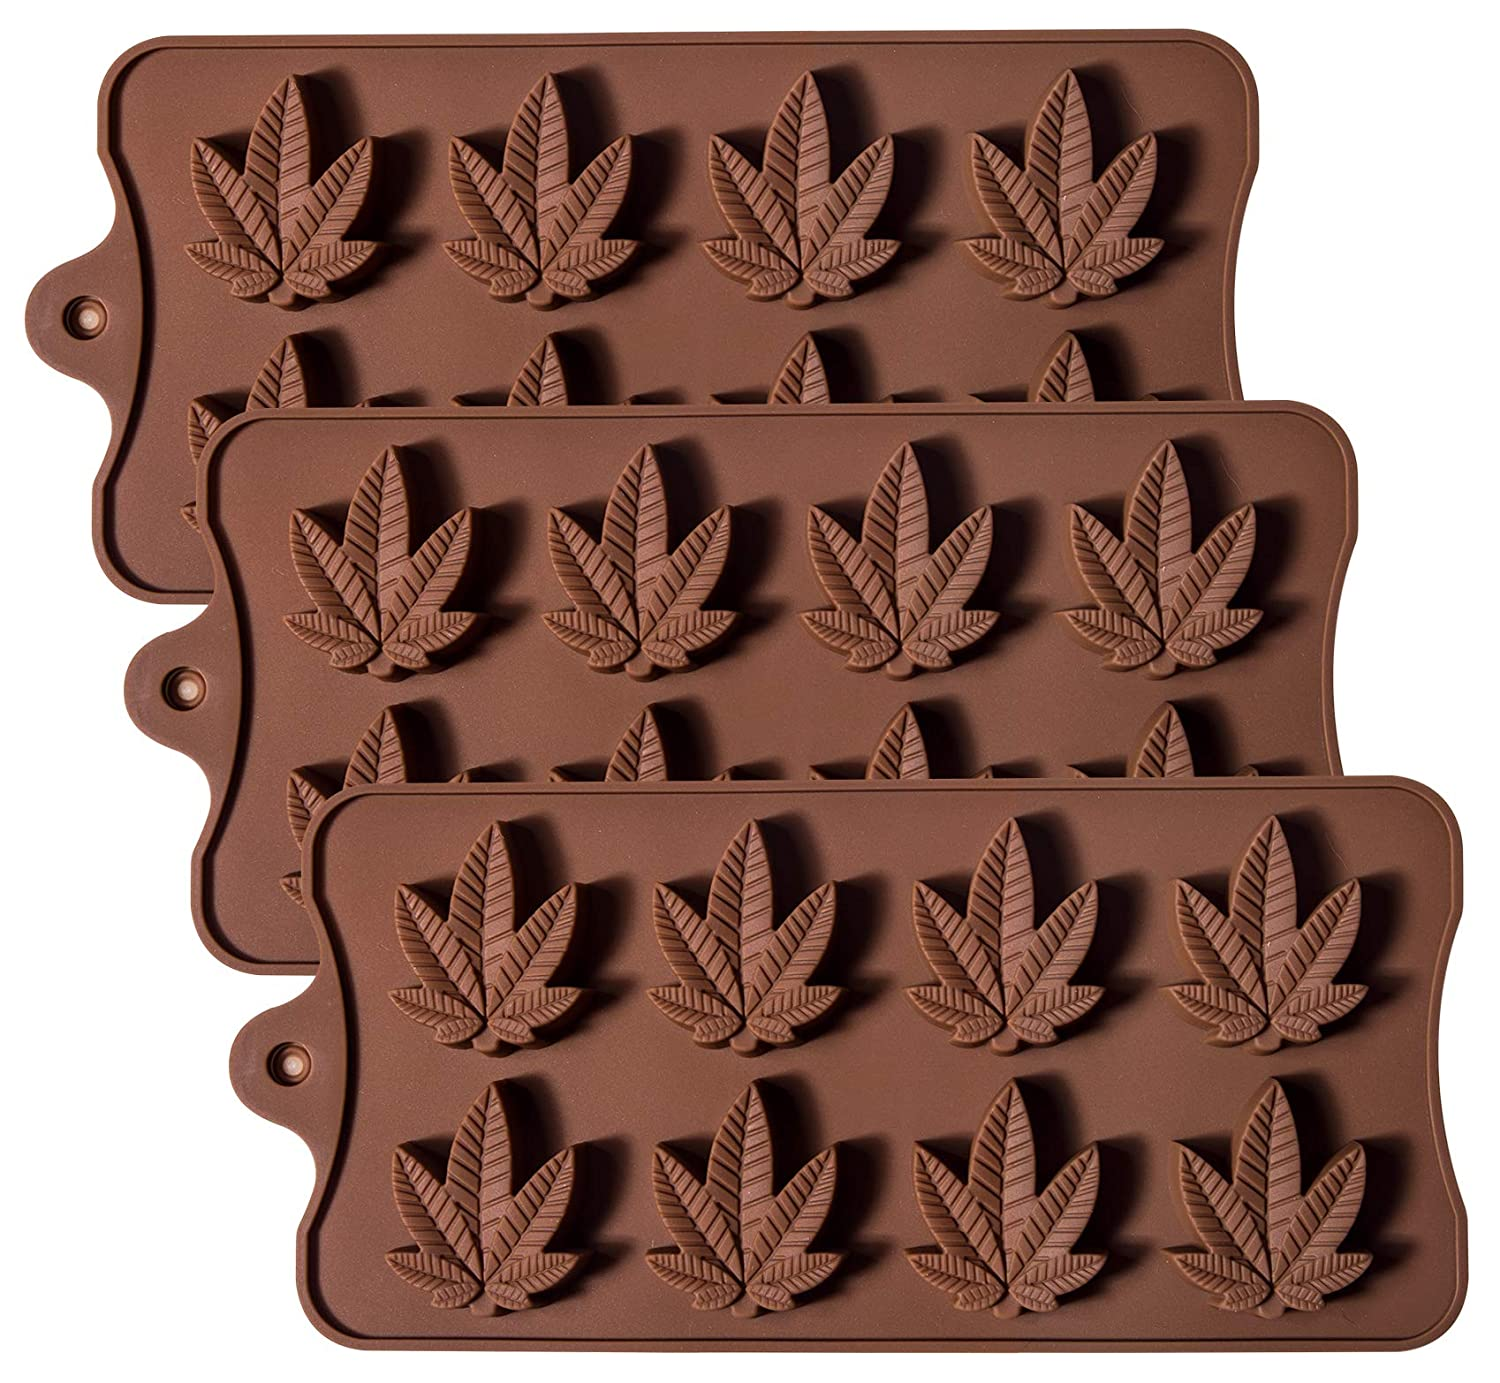 Silicone Candy Mold - Korlon Chocolate Gummy Molds Ice Cube Trays for Party Gummies Cupcake Toppers Ice Soap Chocolate Cookies Butter or Party Novelty Gift, Pack of 3 CLN-042